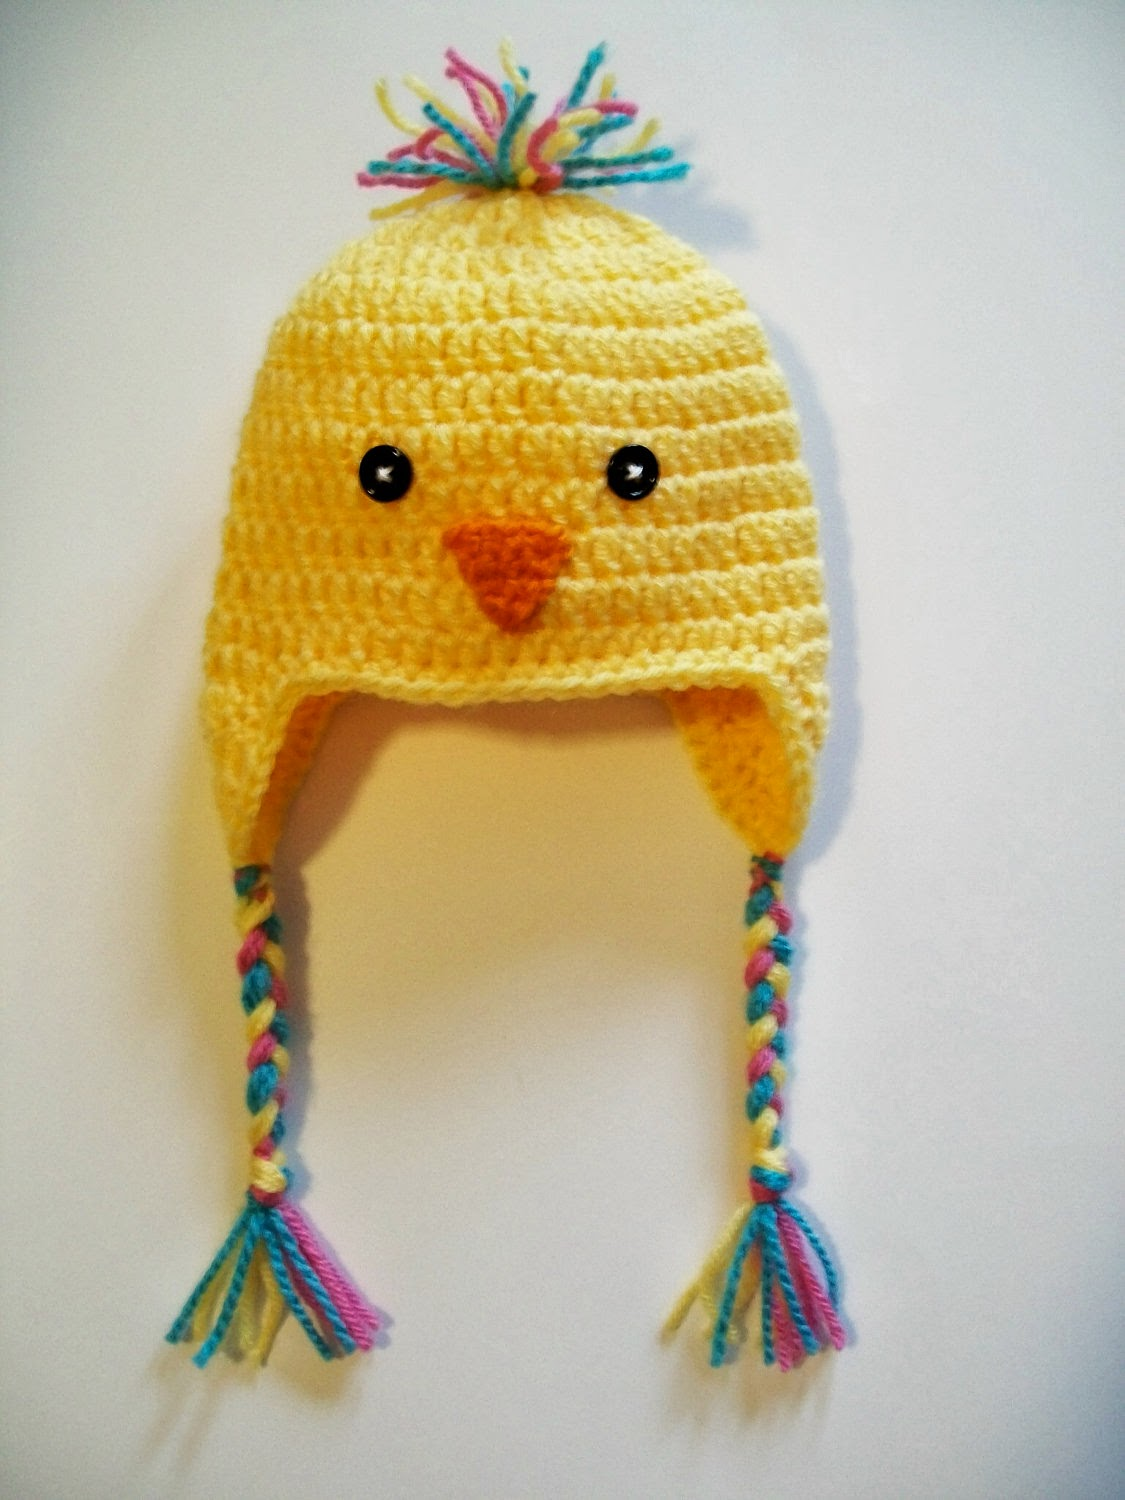 Crochet Baby Easter Hat Patterns : Free Easter Hat Crochet Patterns ~ Lets Crochet.com